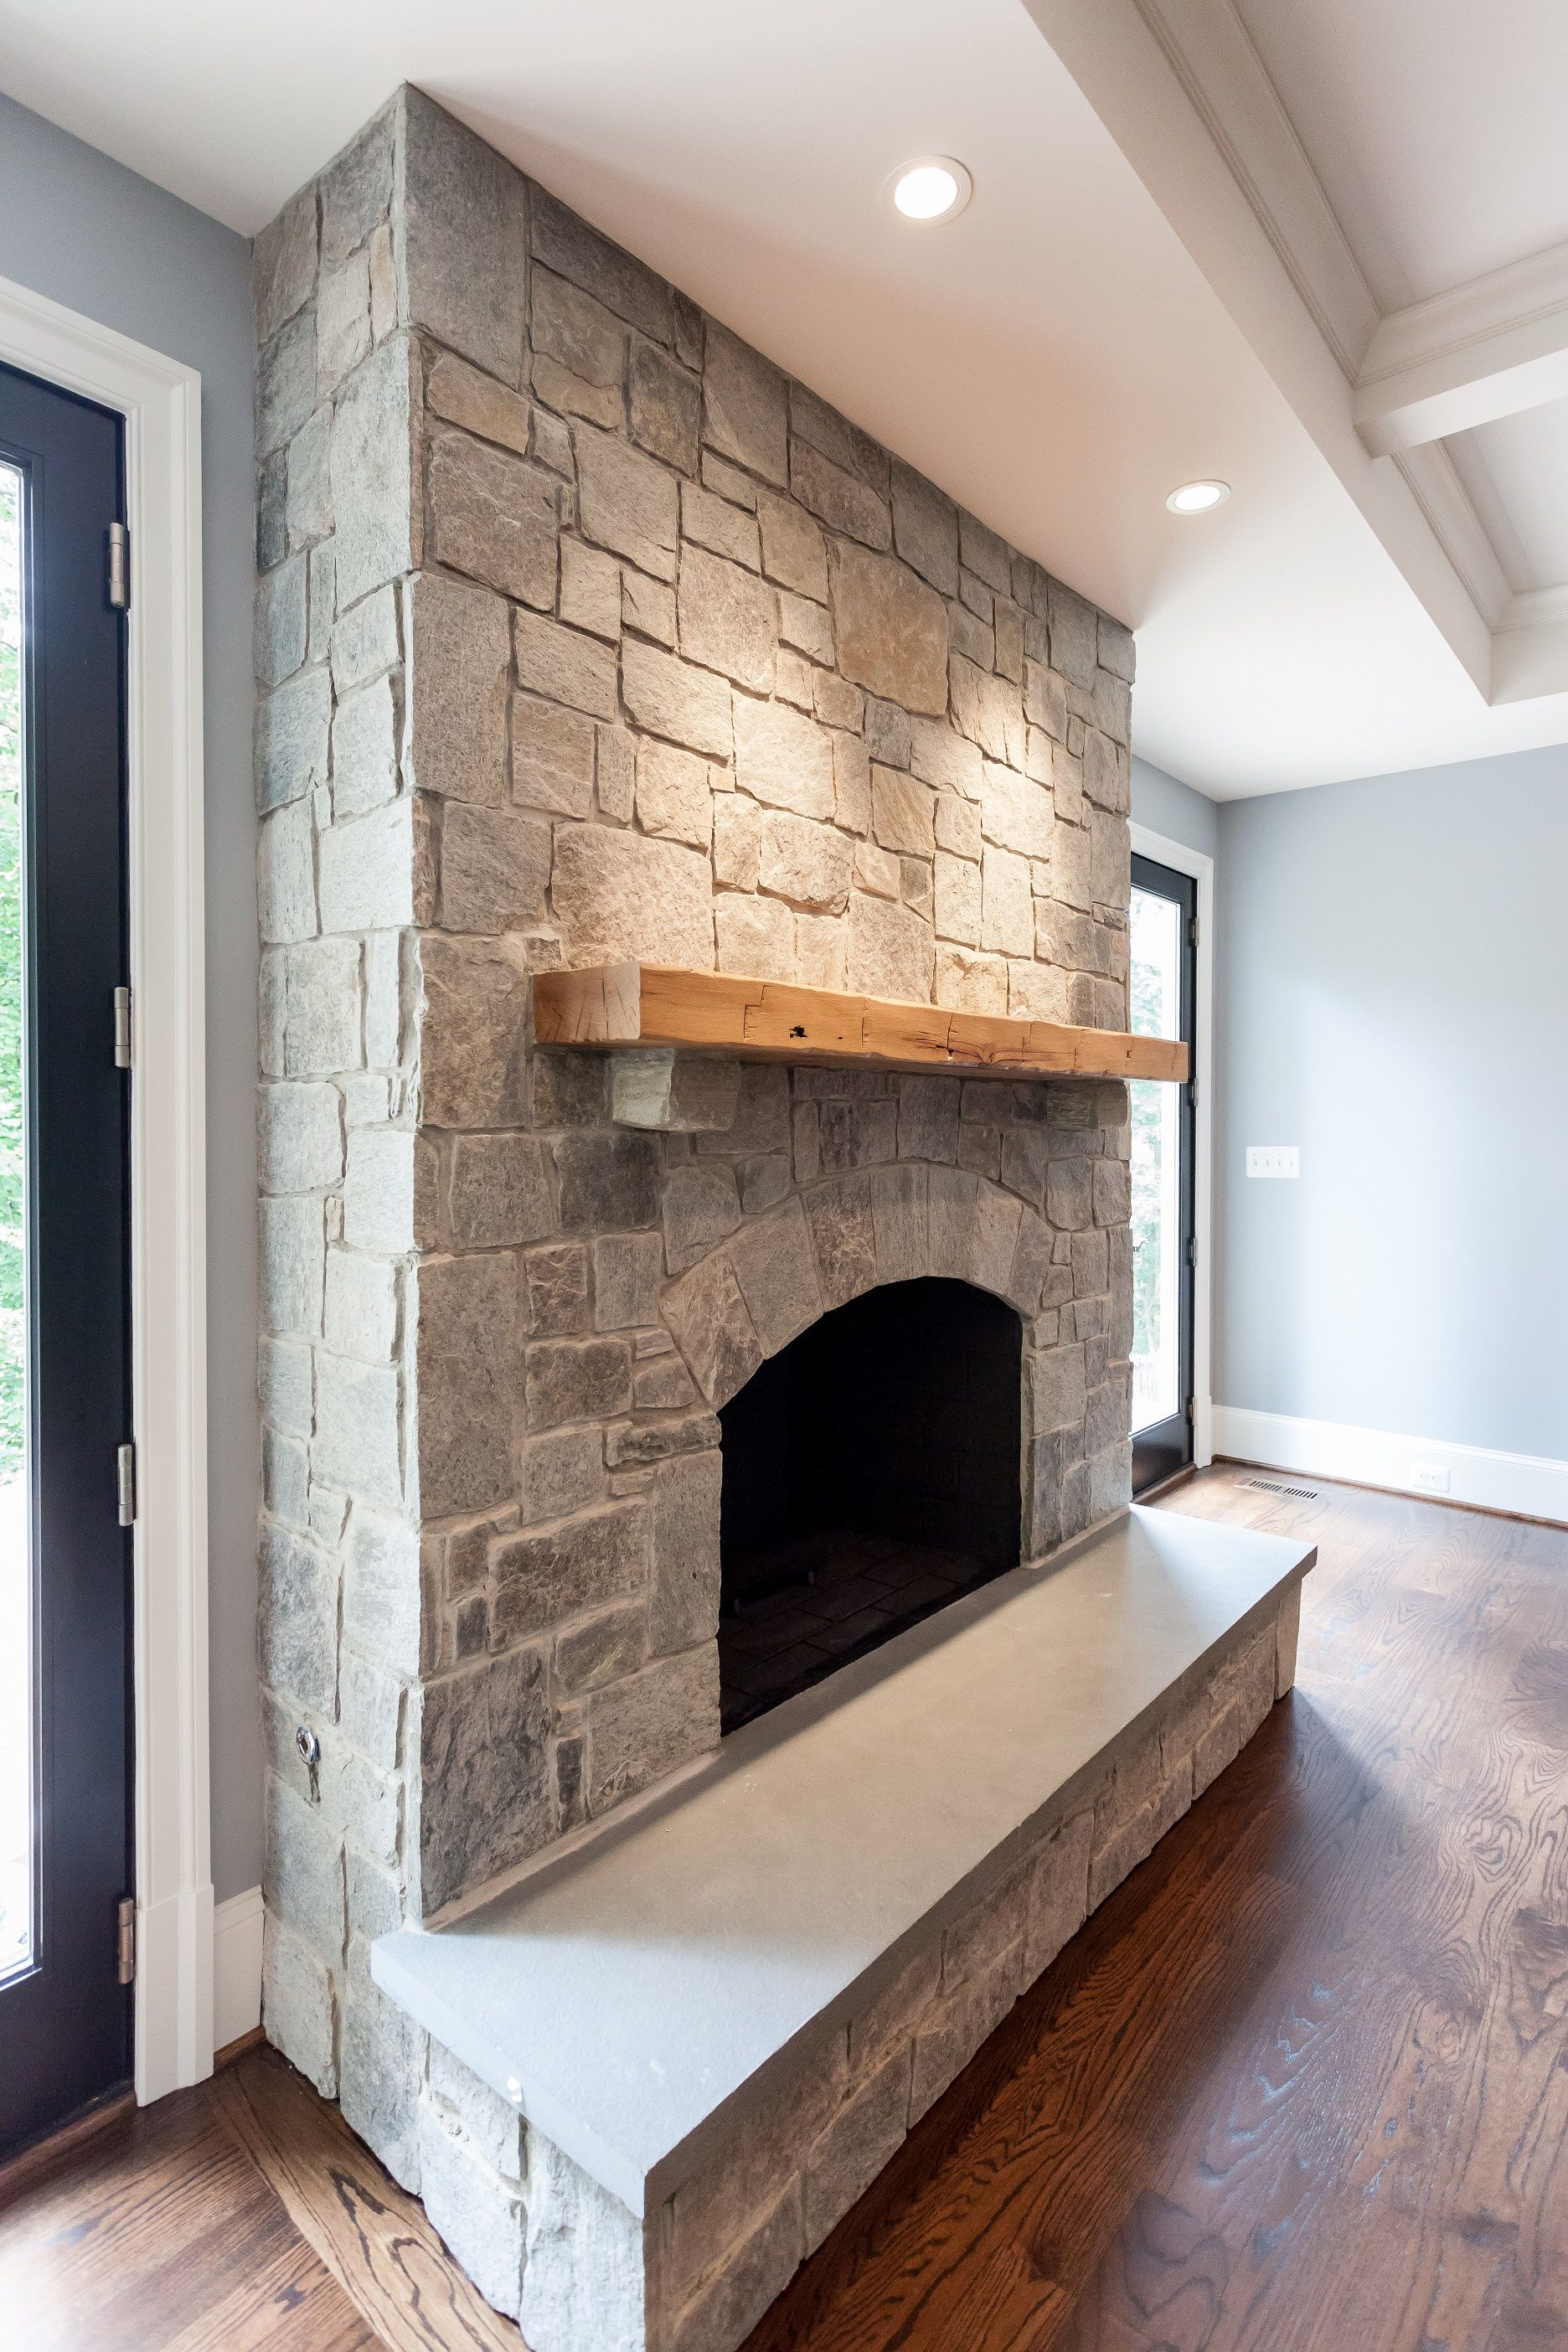 Natural Gray Stone Fireplace With Reclaimed Natural Wood Mantel And Arched Firebox Openin Grey Stone Fireplace Natural Stone Fireplaces Stone Fireplace Remodel